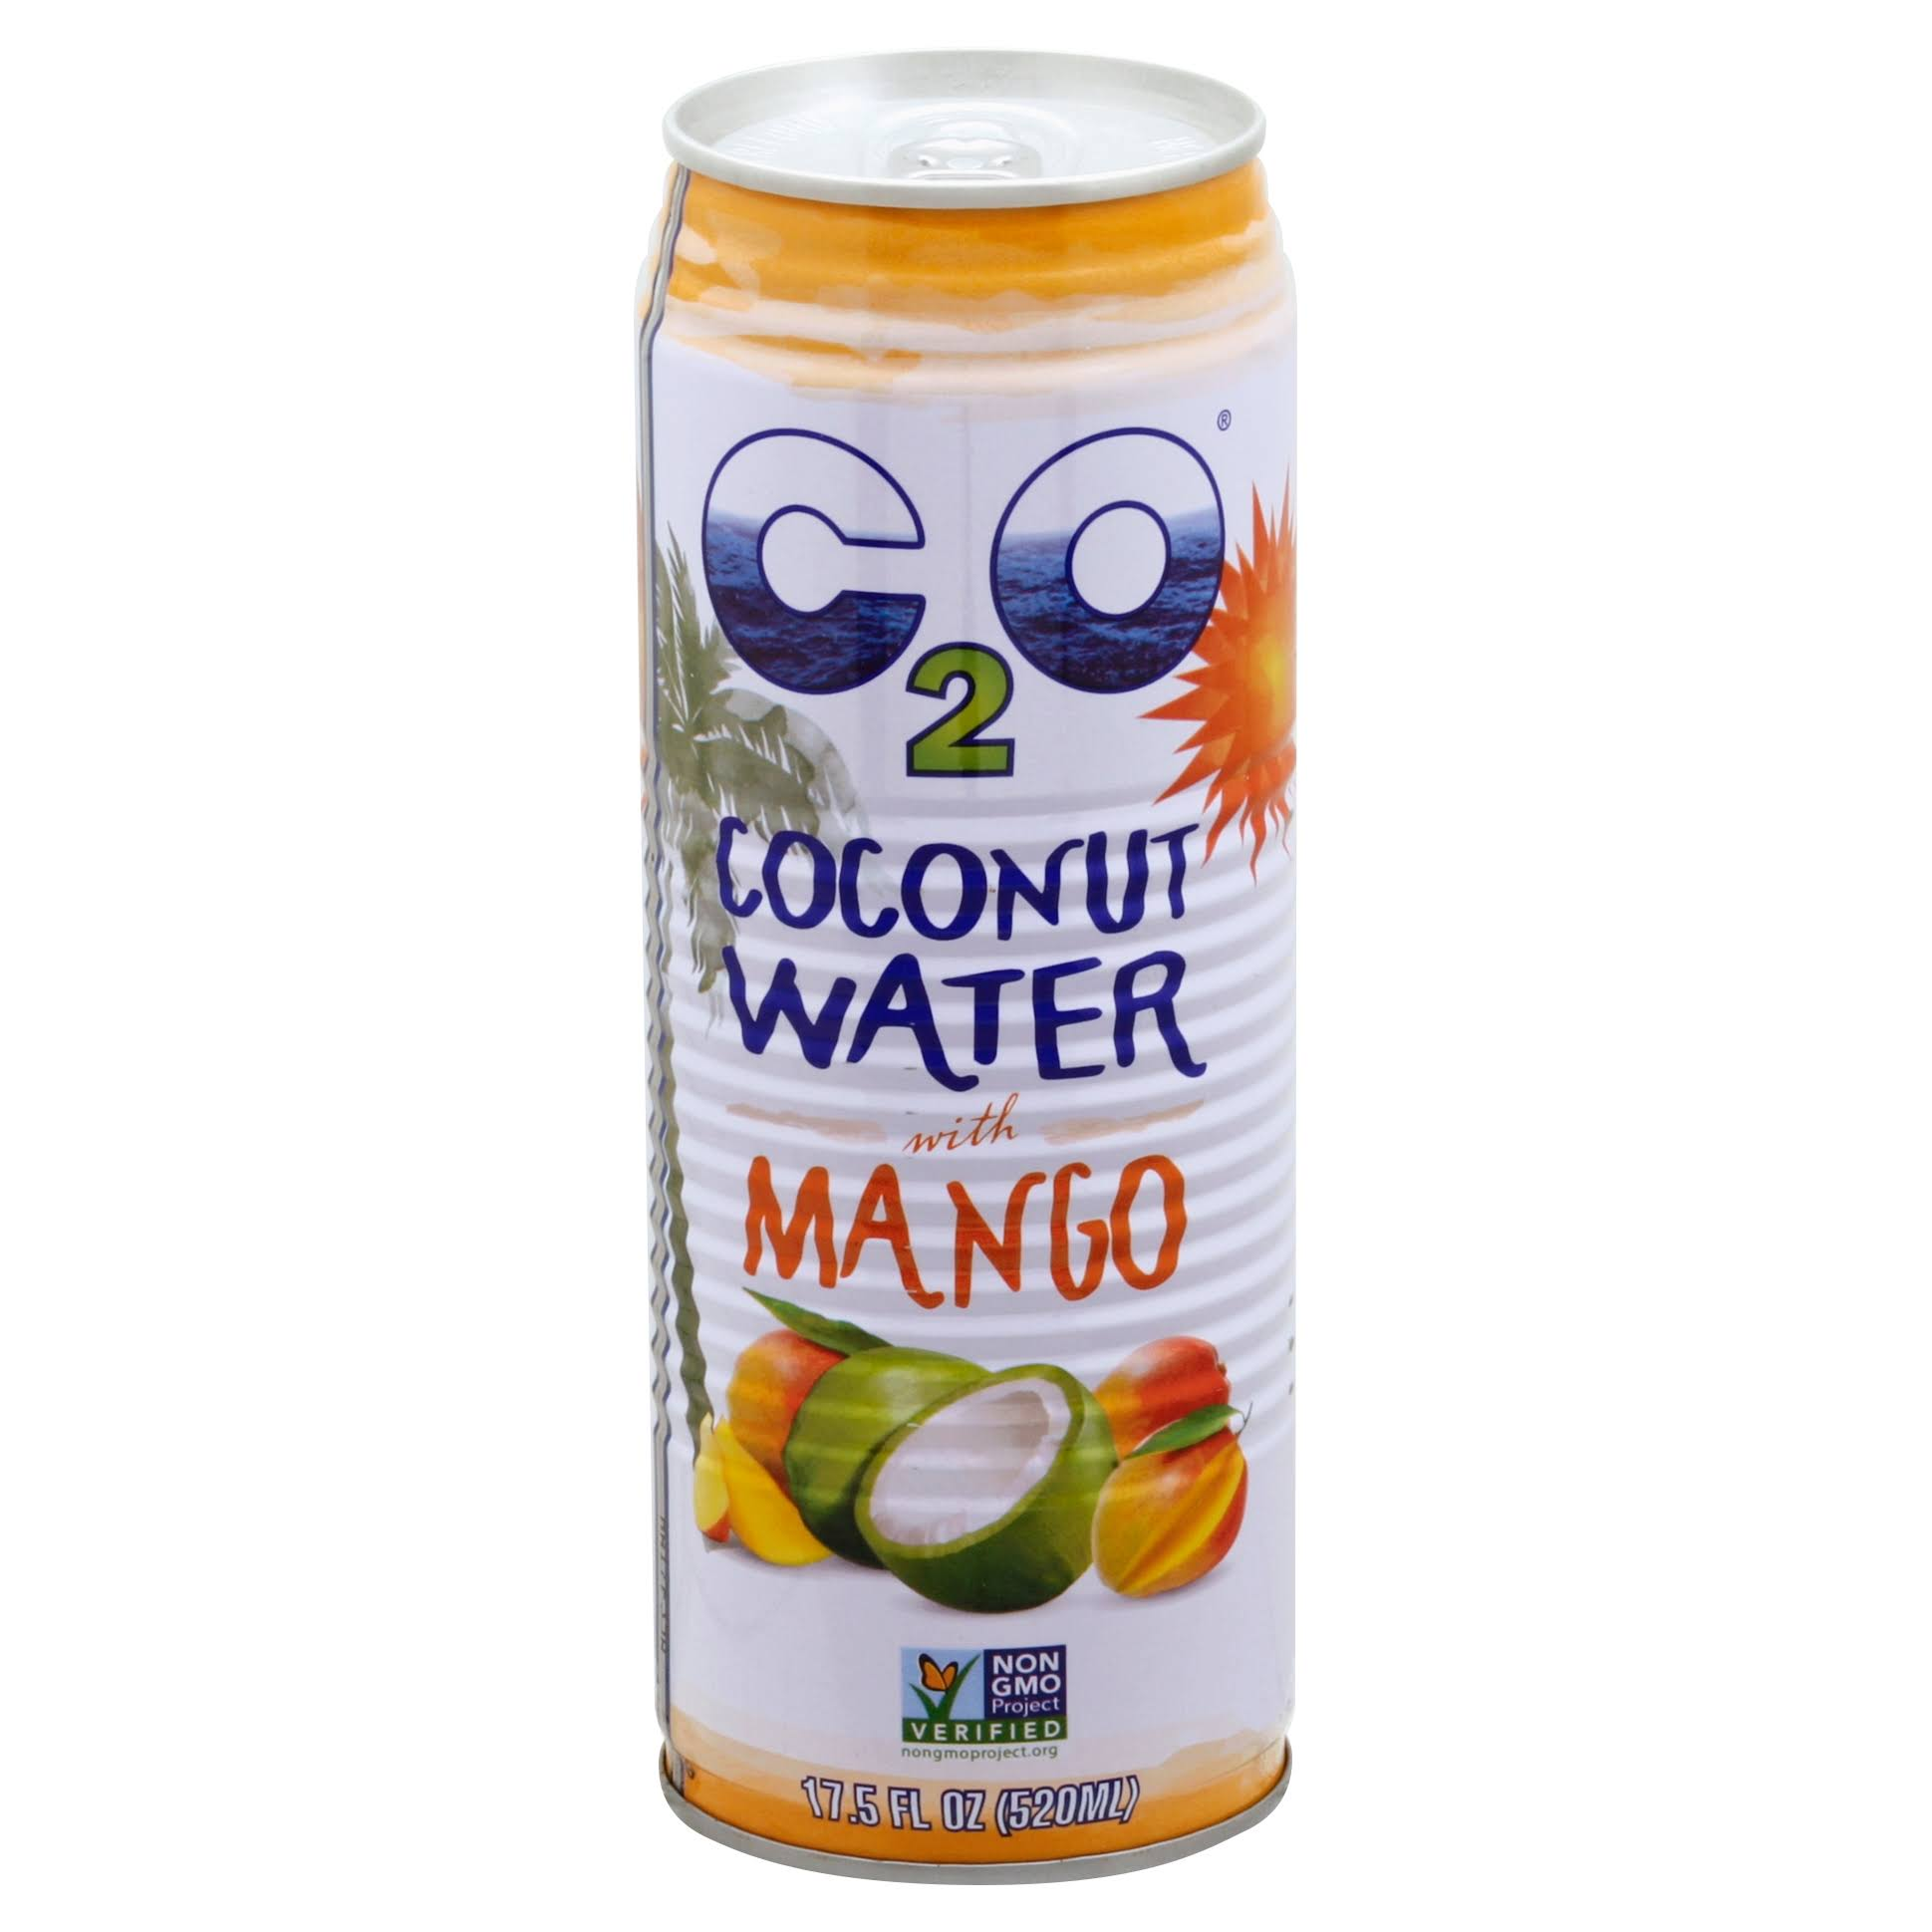 C20 Coconut Water with Mango - 17.5 fl oz can